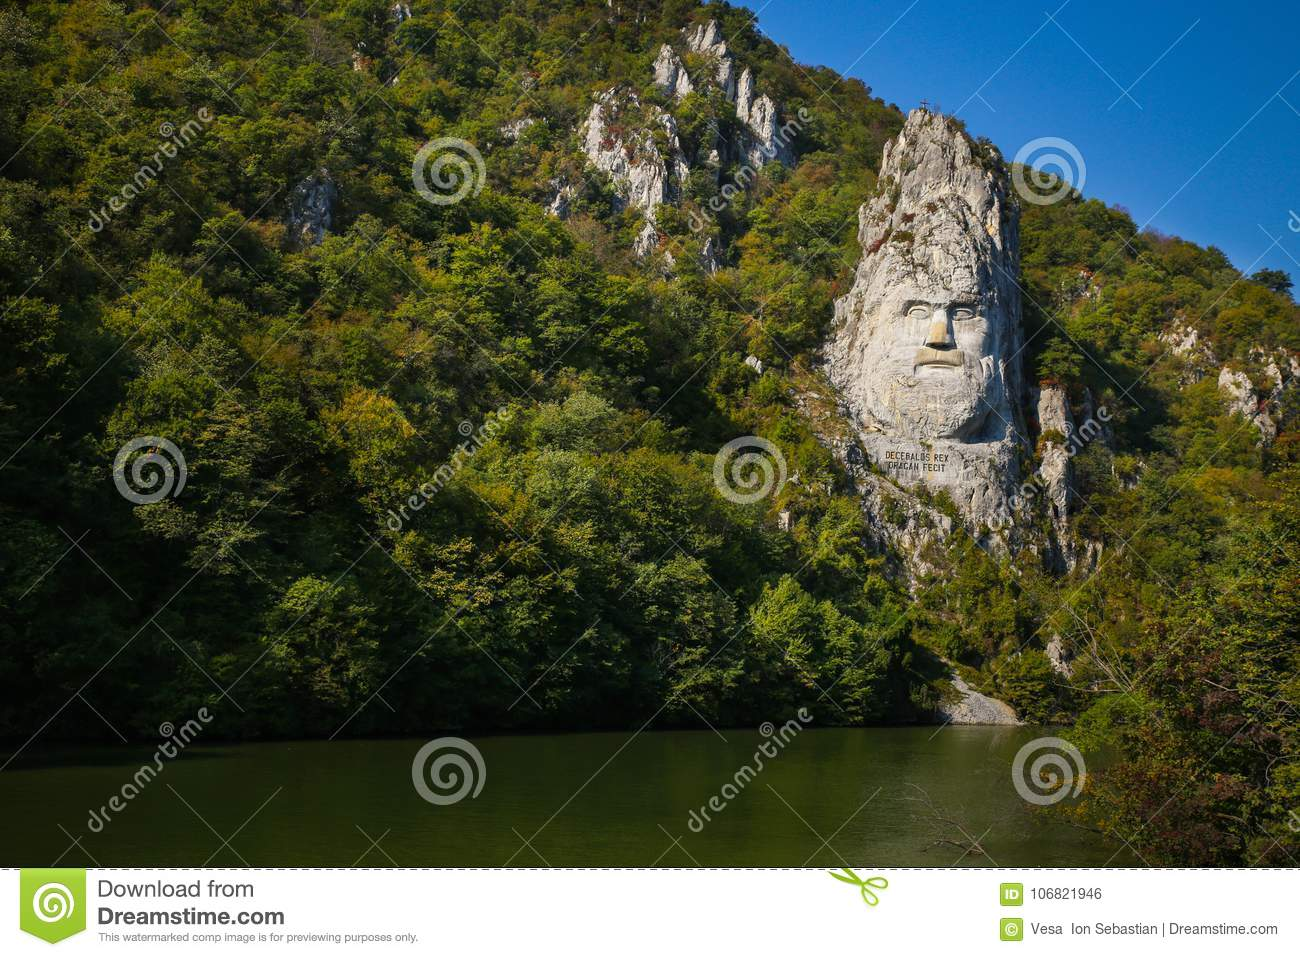 The statue of Decebal carved in the mountain. Decebal`s head carved in rock, Iron Gates Natural Park